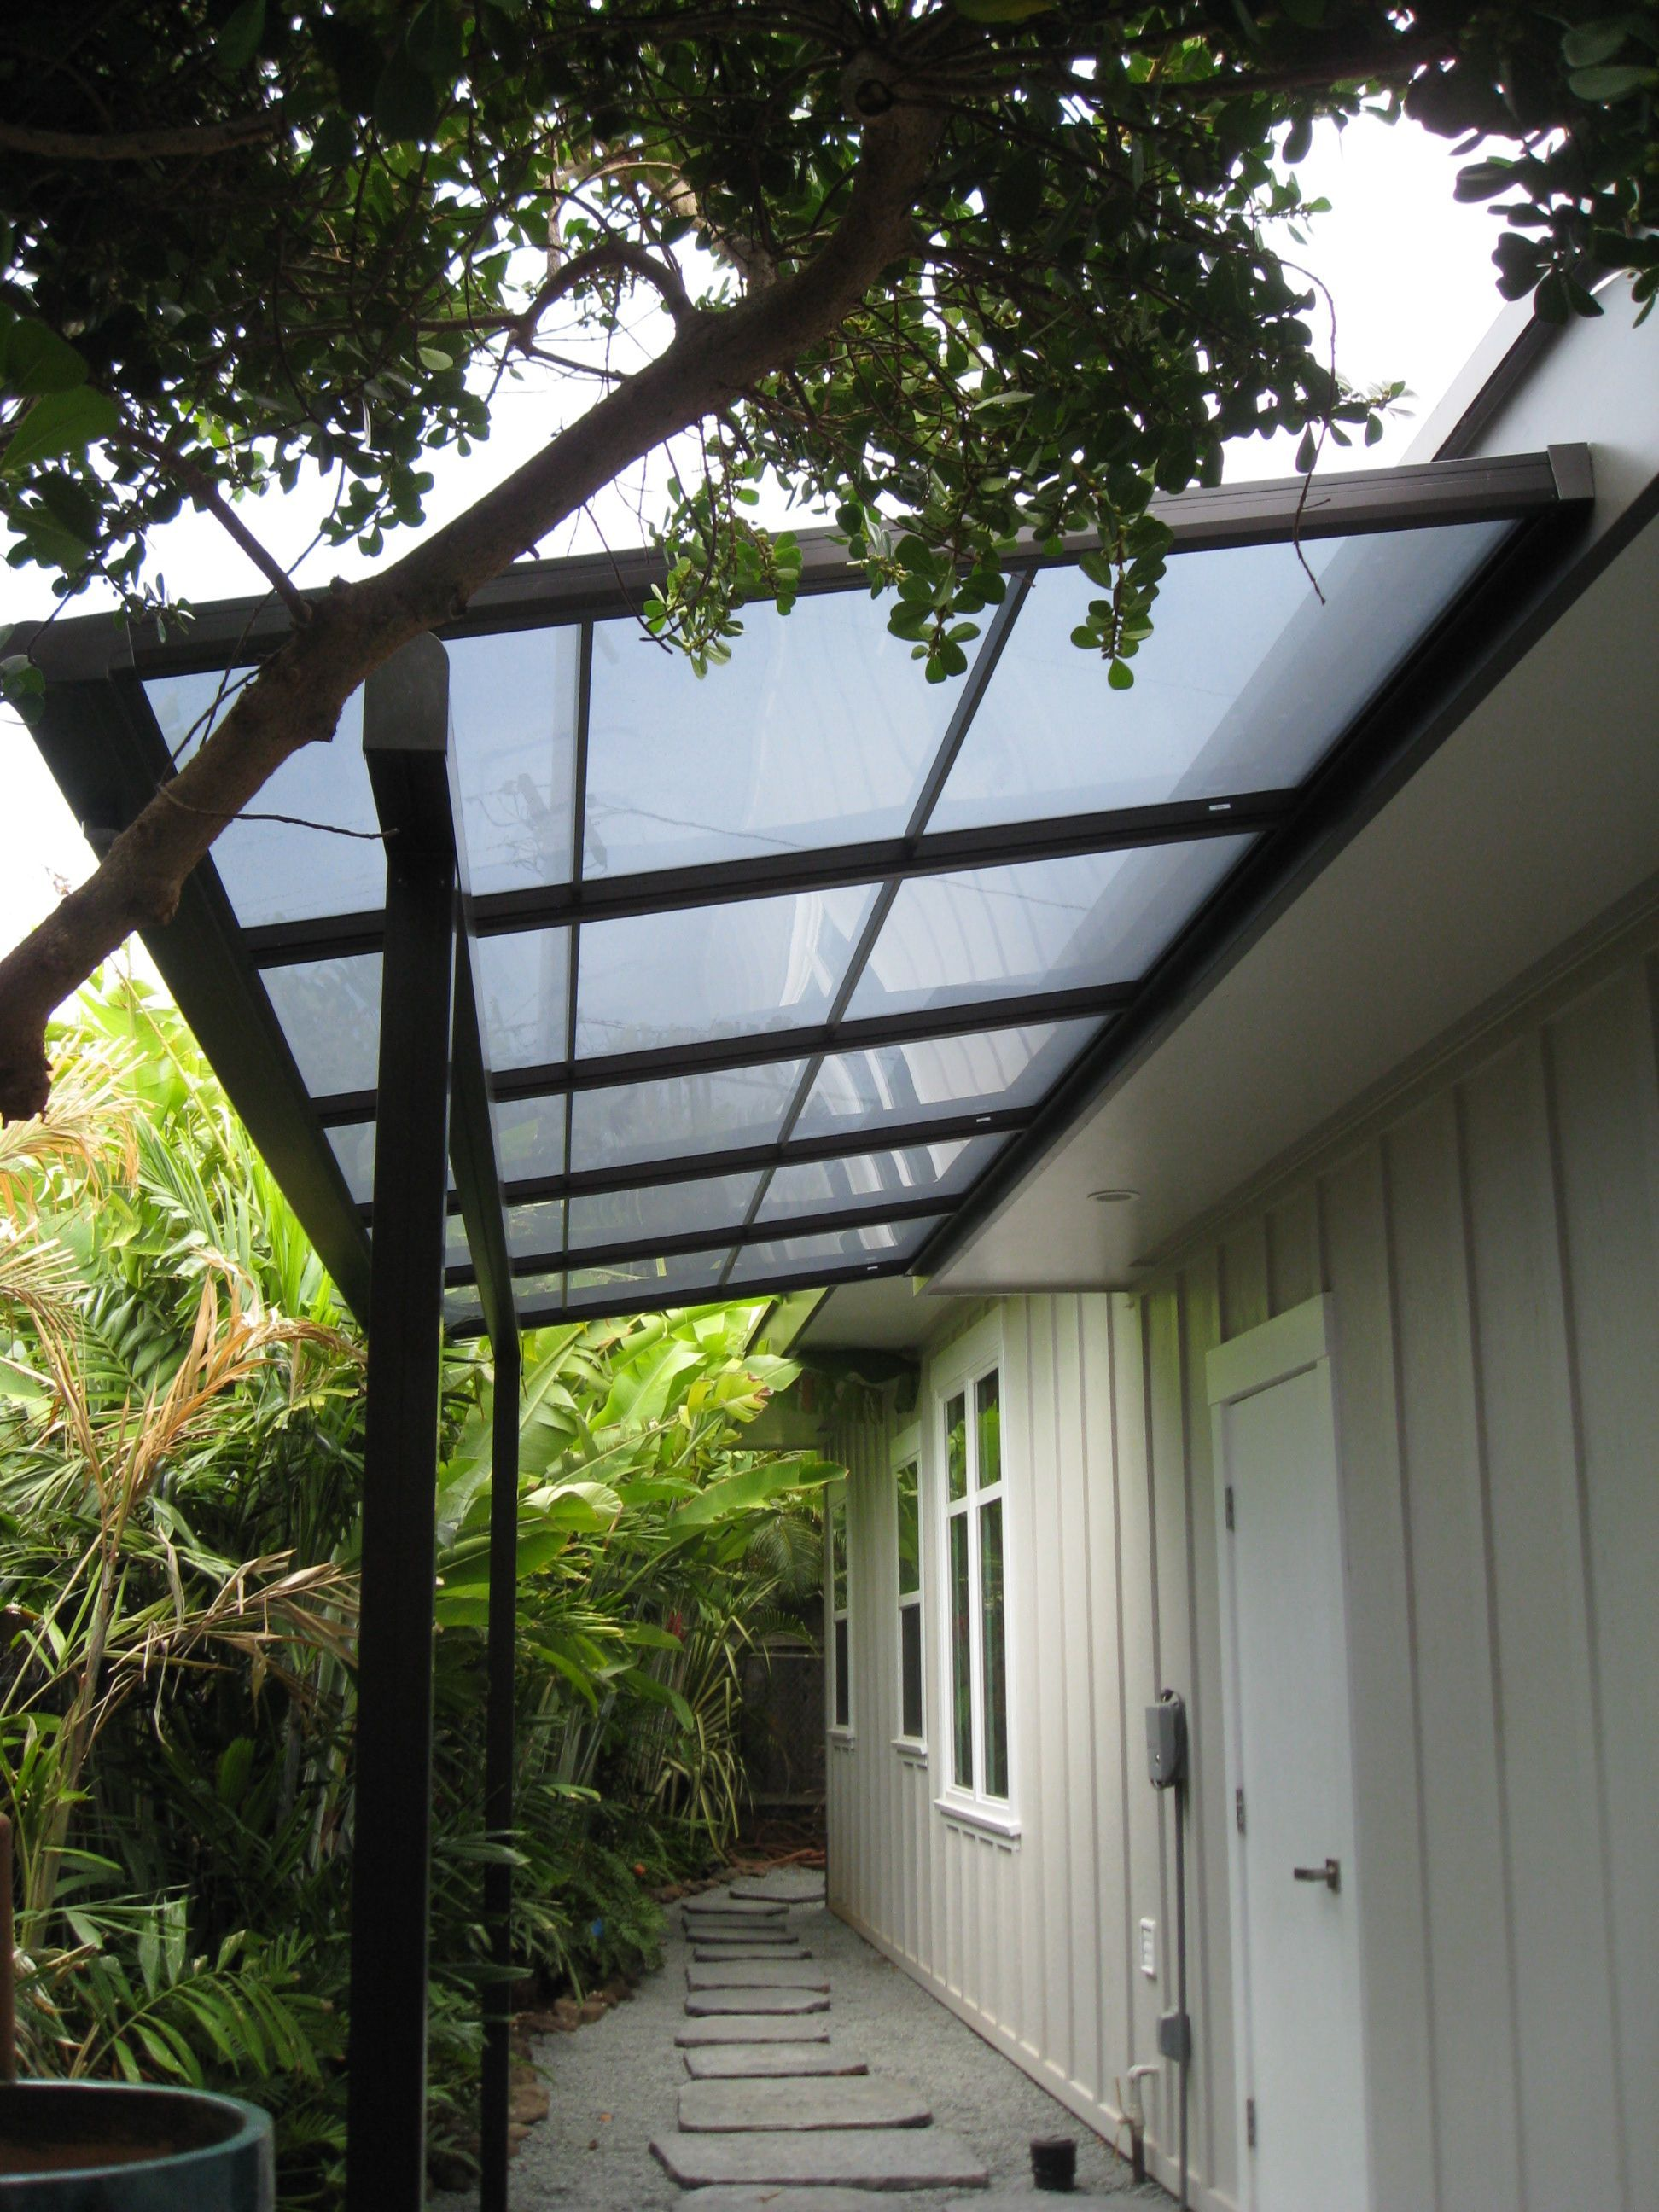 Small Patio Cover With Bearing Beam And Polycarbonate (Lexan) Roof